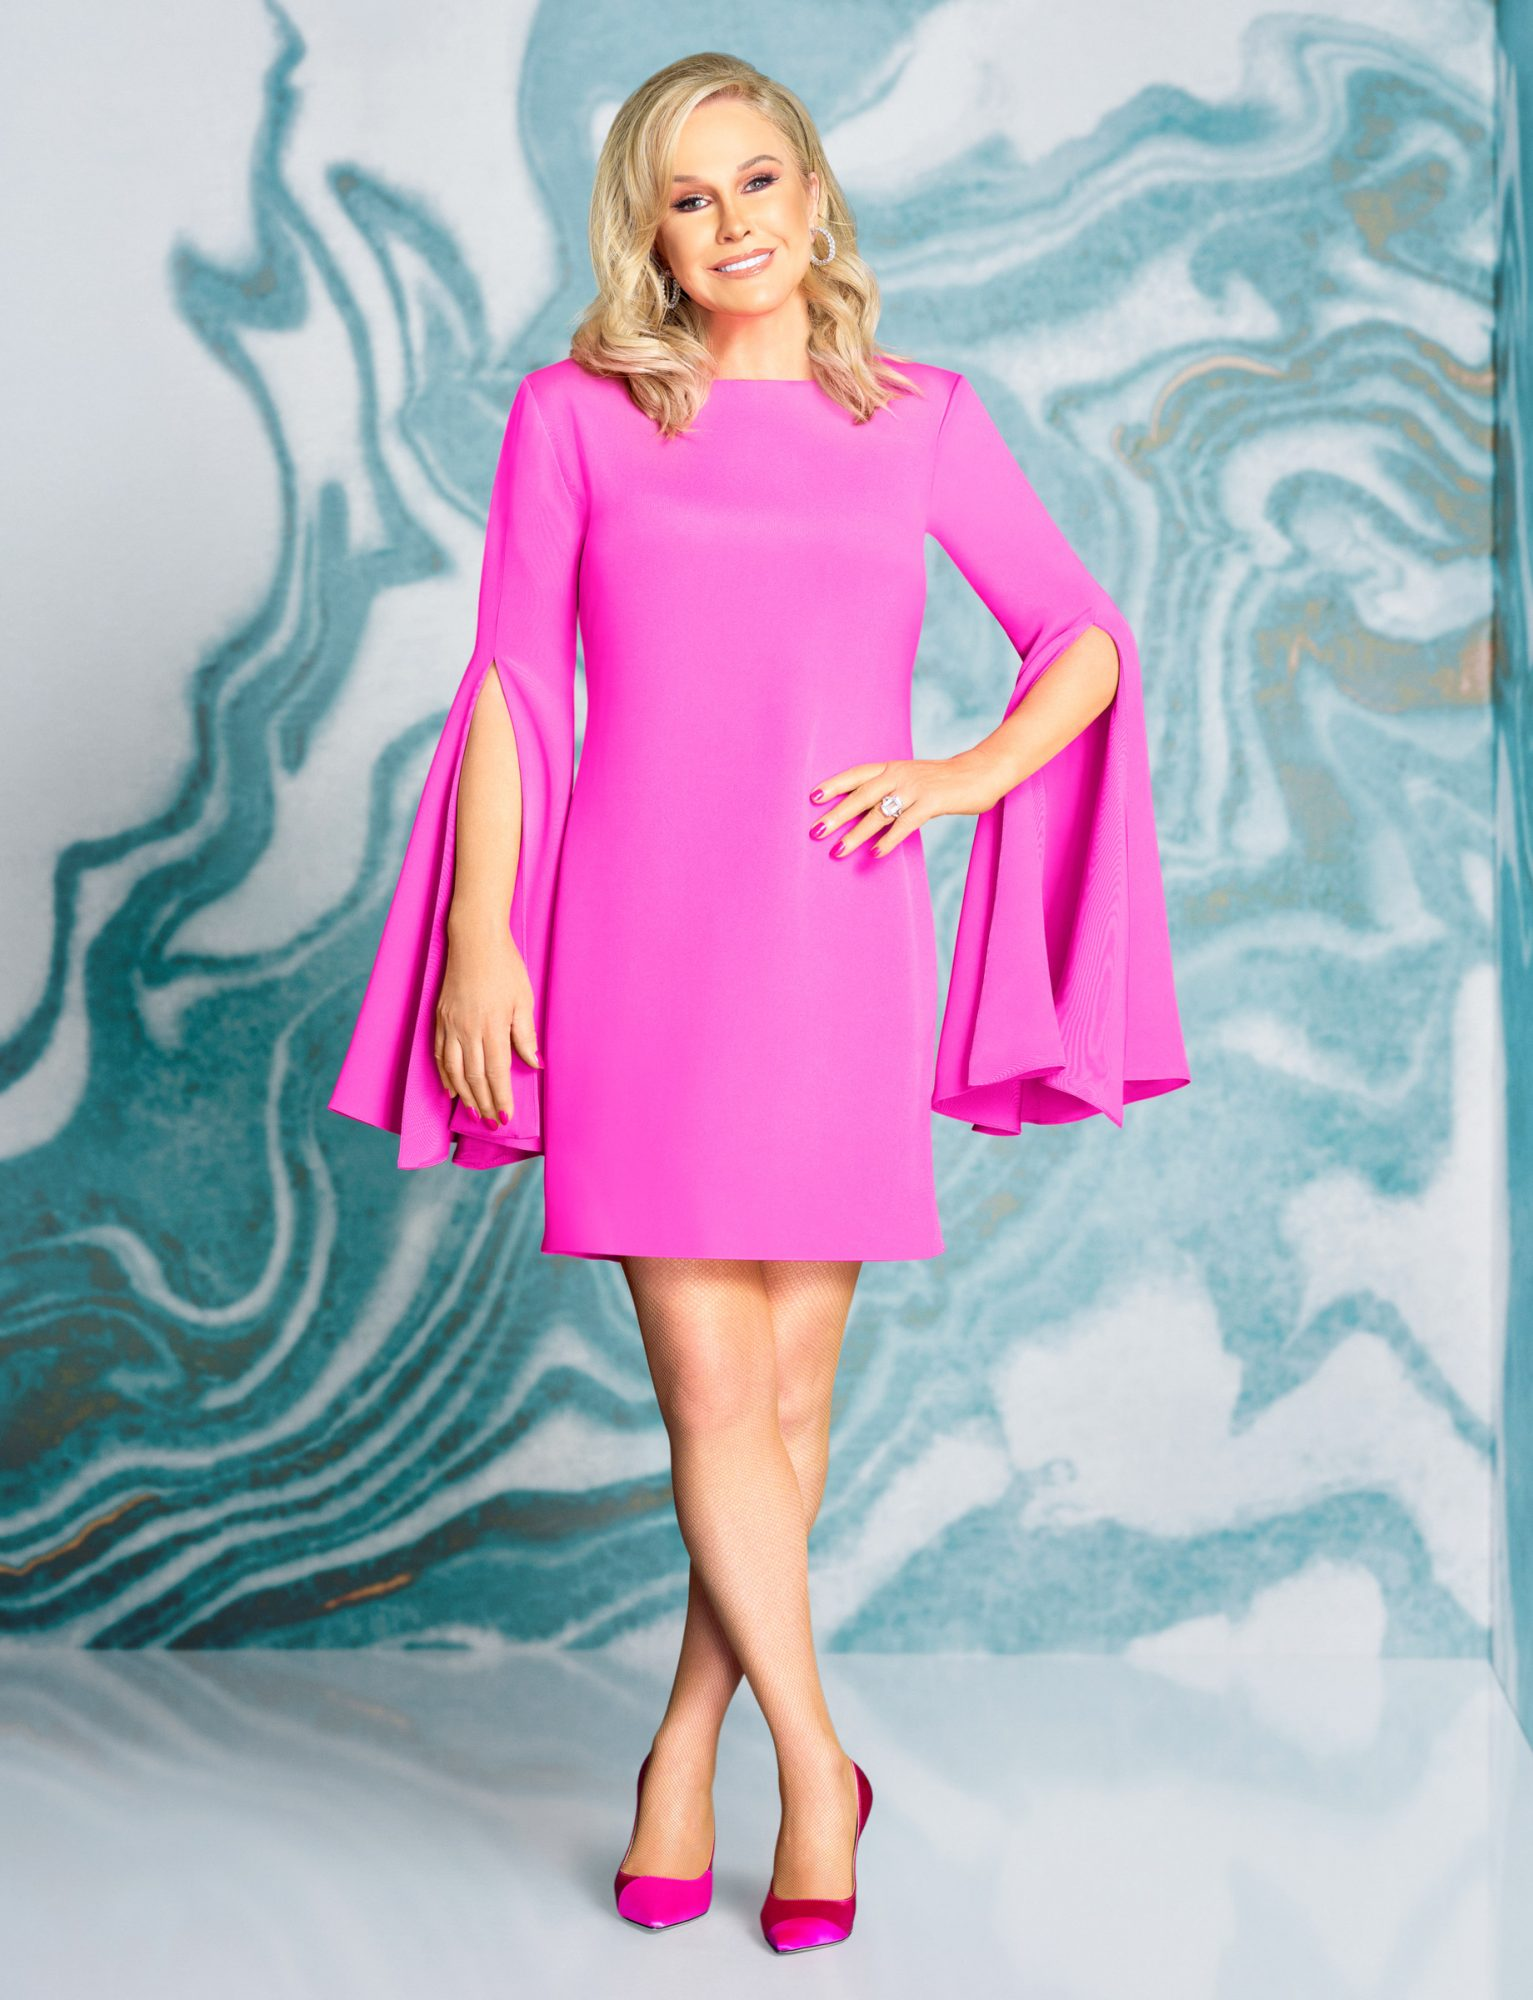 The Real Housewives of Beverly Hills - Kathy Hilton